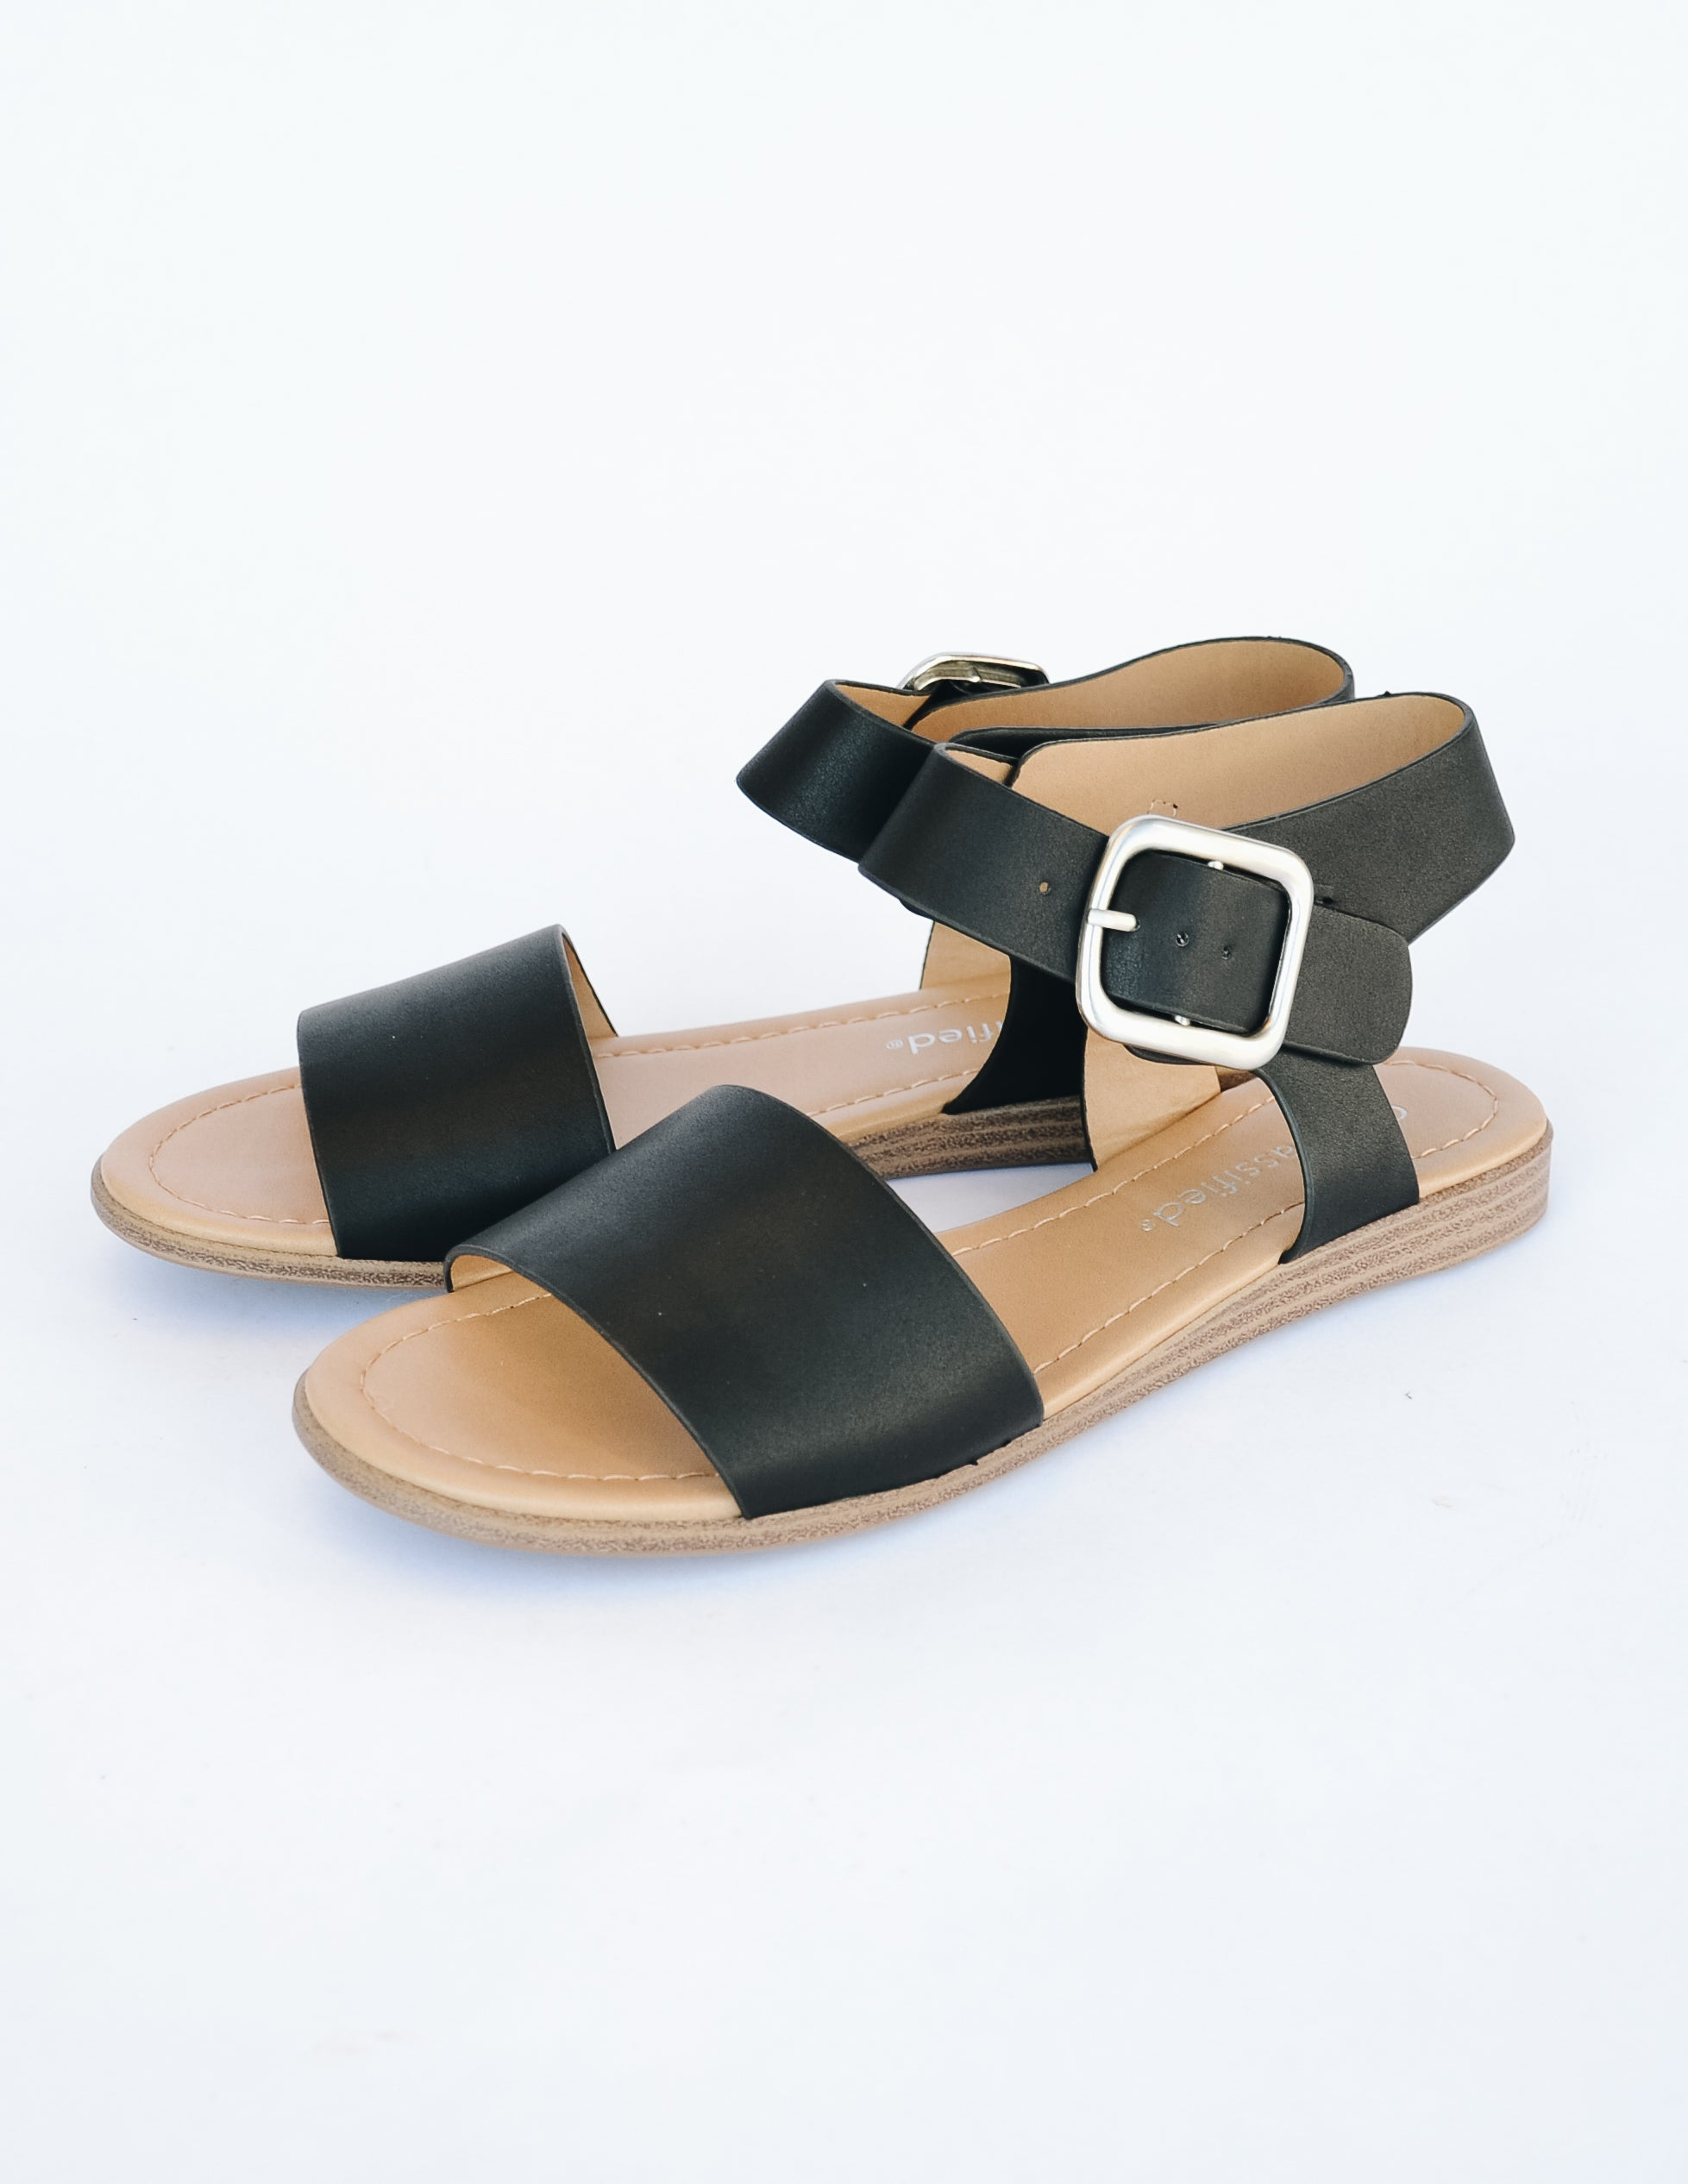 Black sandal with tan insole on white background - elle bleu shoes